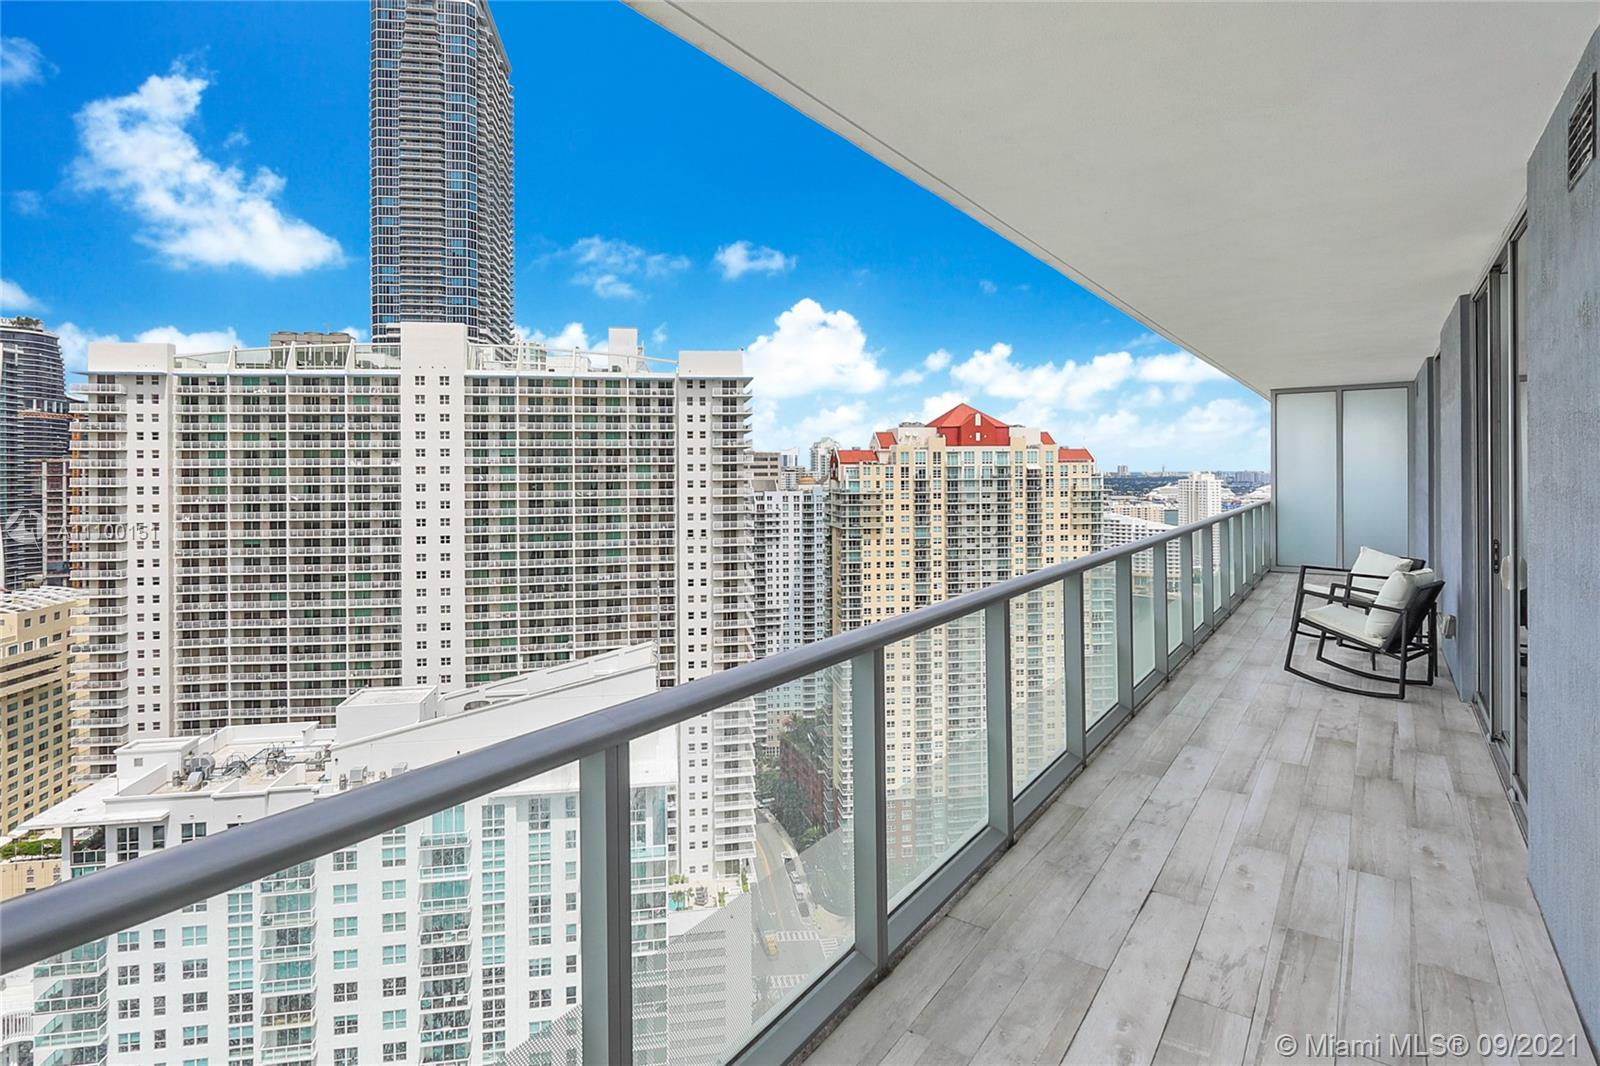 Spectacular & furnished 2 Bed + Den / 2.5 Bath unit at Brickell House with gorgeous Brickell skyline views from the 34 th floor. This unit features California Closets and Italian Porcelain flooring. Floor to ceiling windows. Gourmet kitchen and bathroom with imported European cabinetry, premium appliances and finishes. Amenities include, 24-hr welcome desk, lounge, HD screening room with10-ft screen theater-style seating, and two pools: Roof top Pool and 50 ft. long lap pool with poolside cabanas, sauna, spa, Barbecue Area, Fitness Center & Kid's Room. Unit is tenant occupied until 07.14.22.